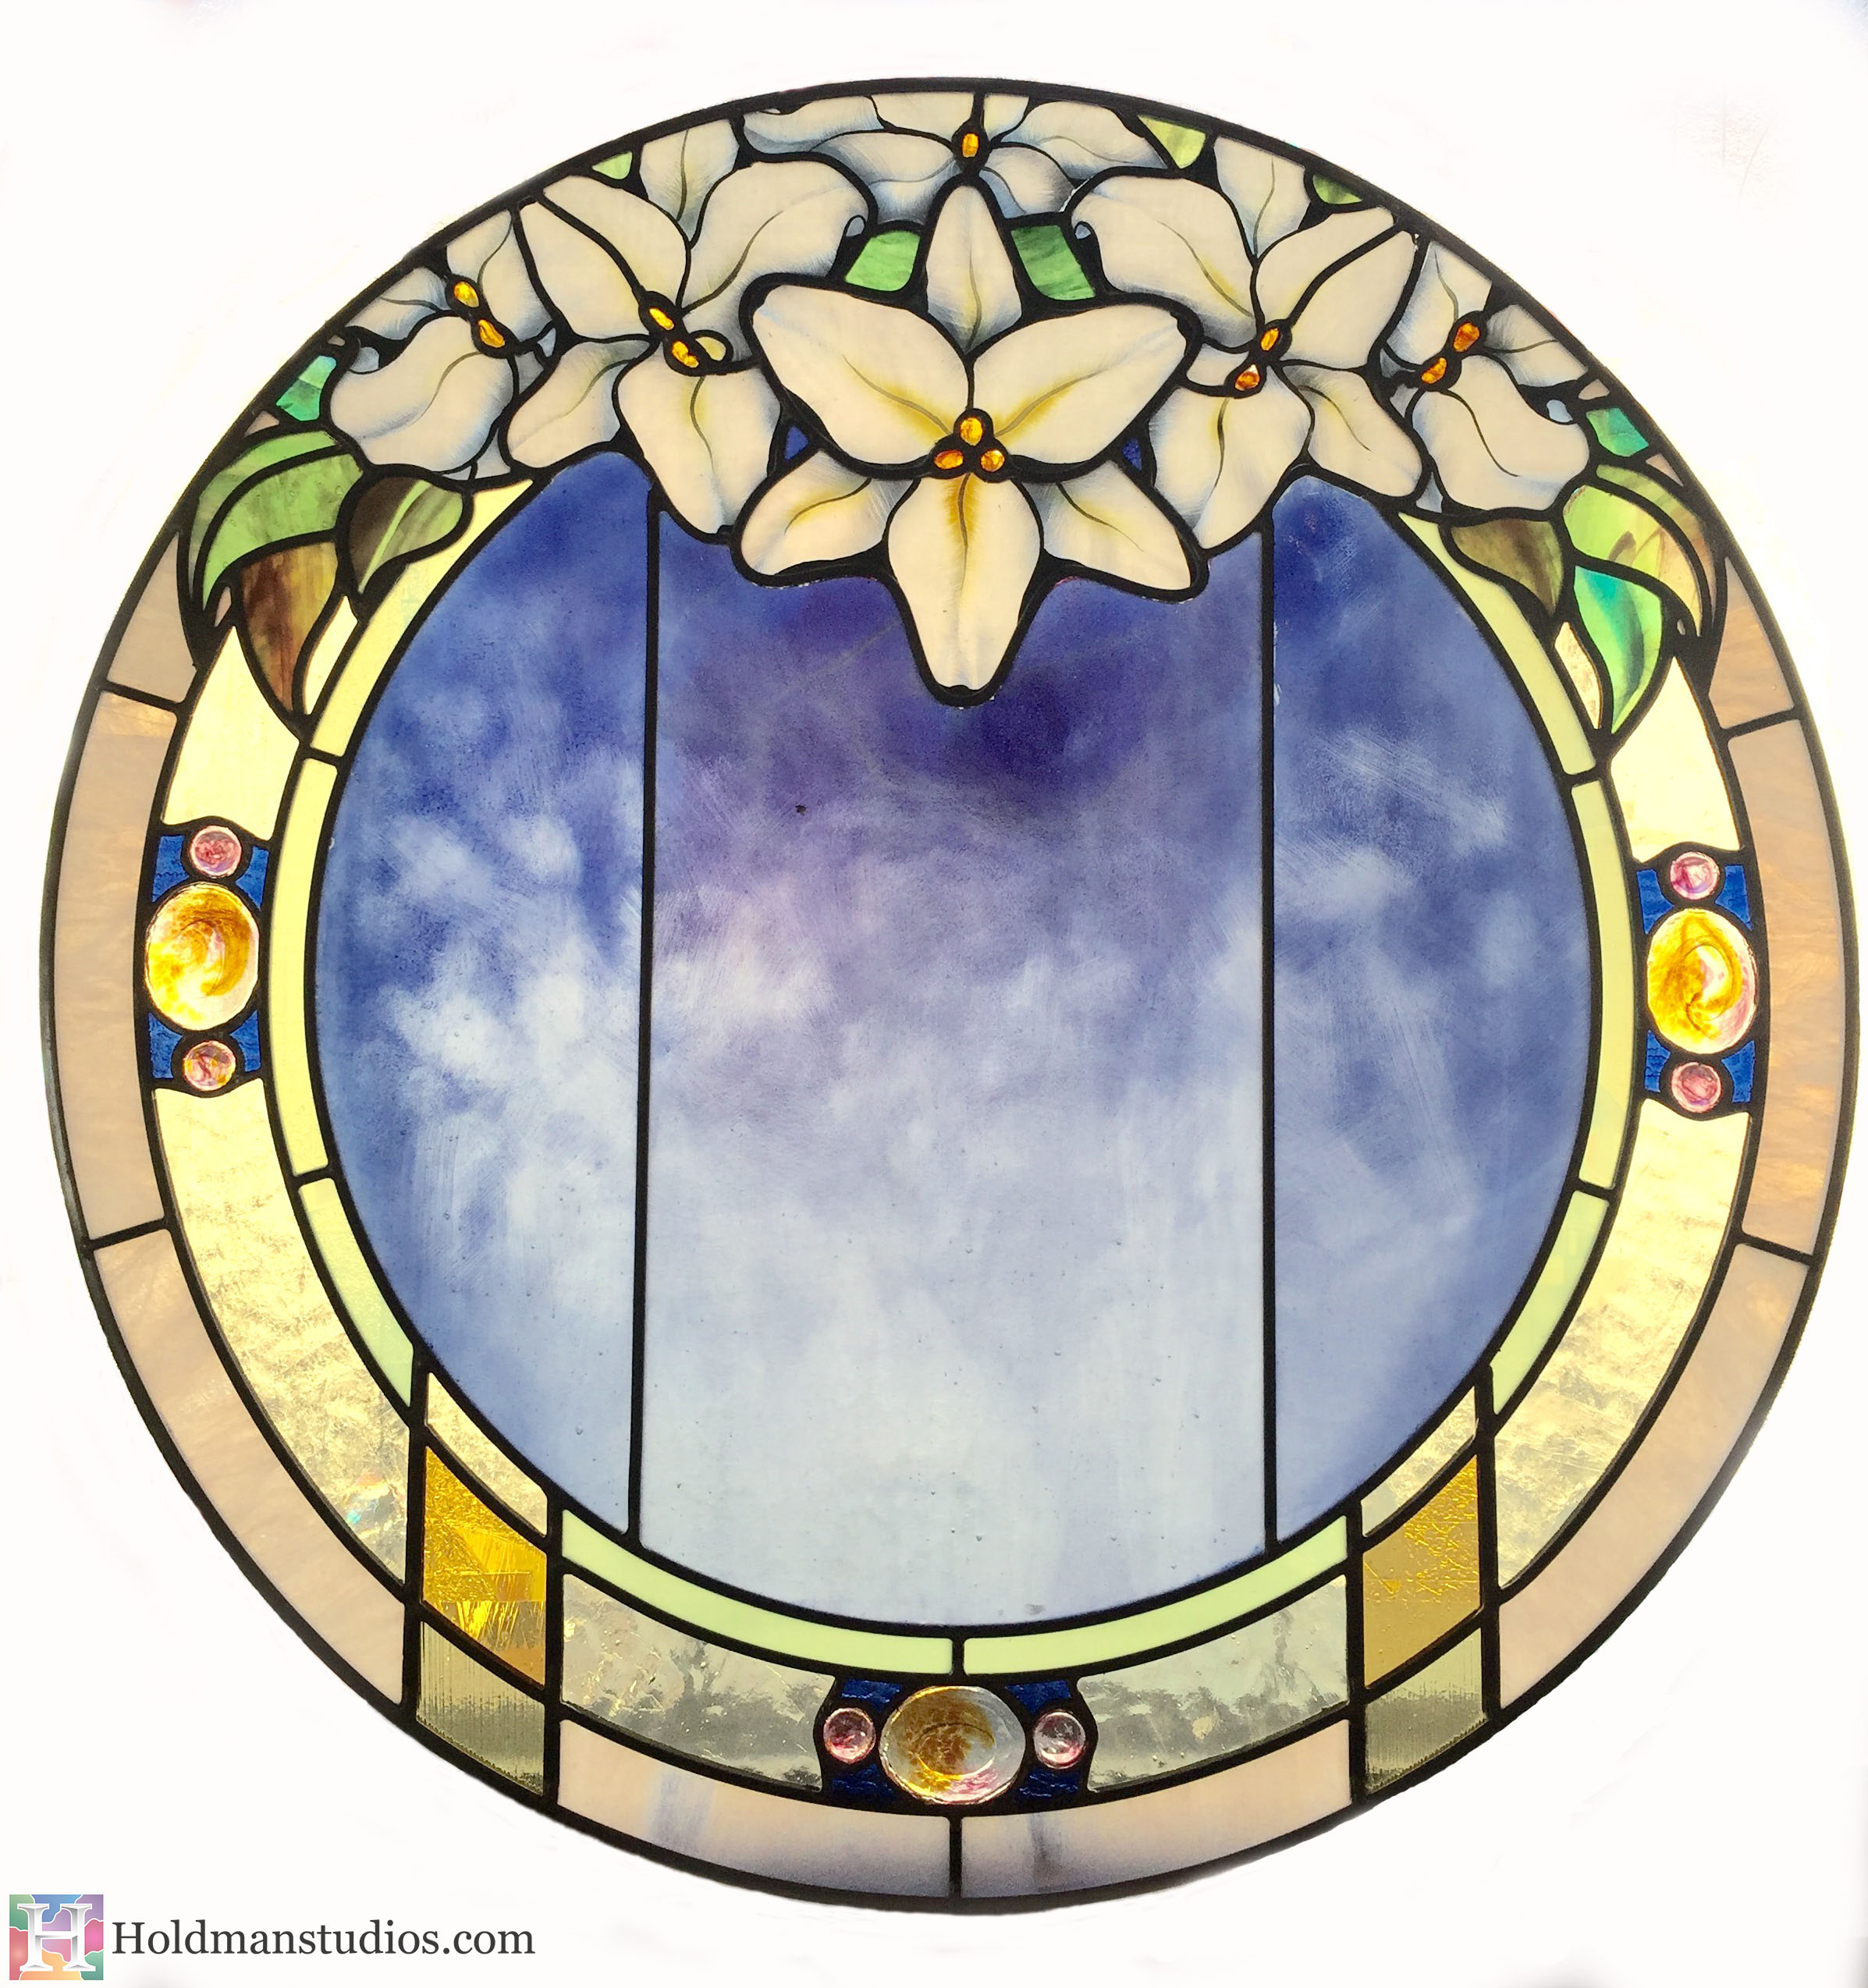 Holdman-Studios-Stained-Glass-Paris-LDS-Temple-Madonna-Lily-Flowers-Leaves-Round-Window.jpg